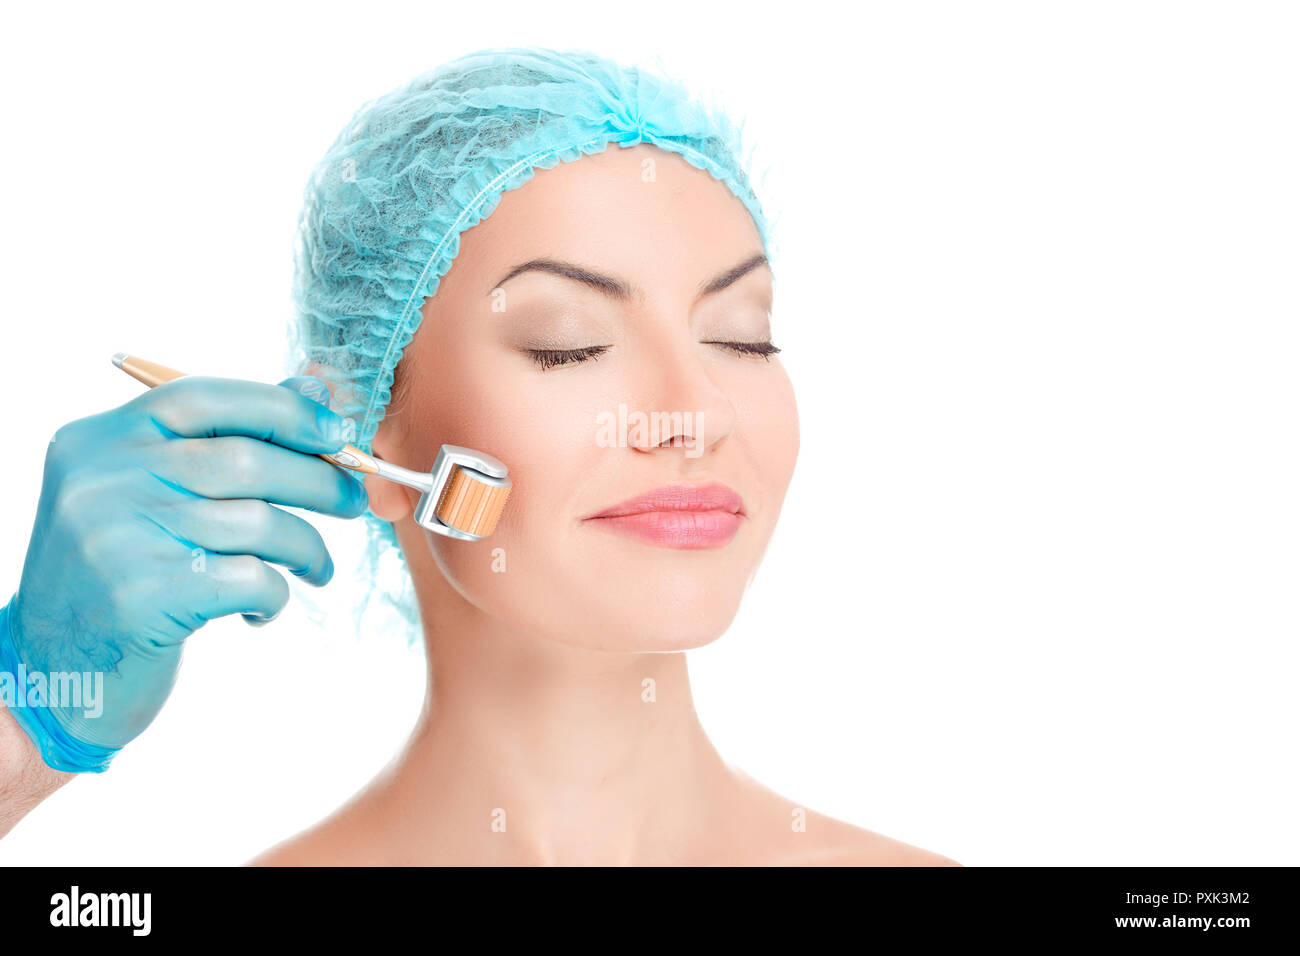 young beautiful woman having an injection mesotherapy - Stock Image